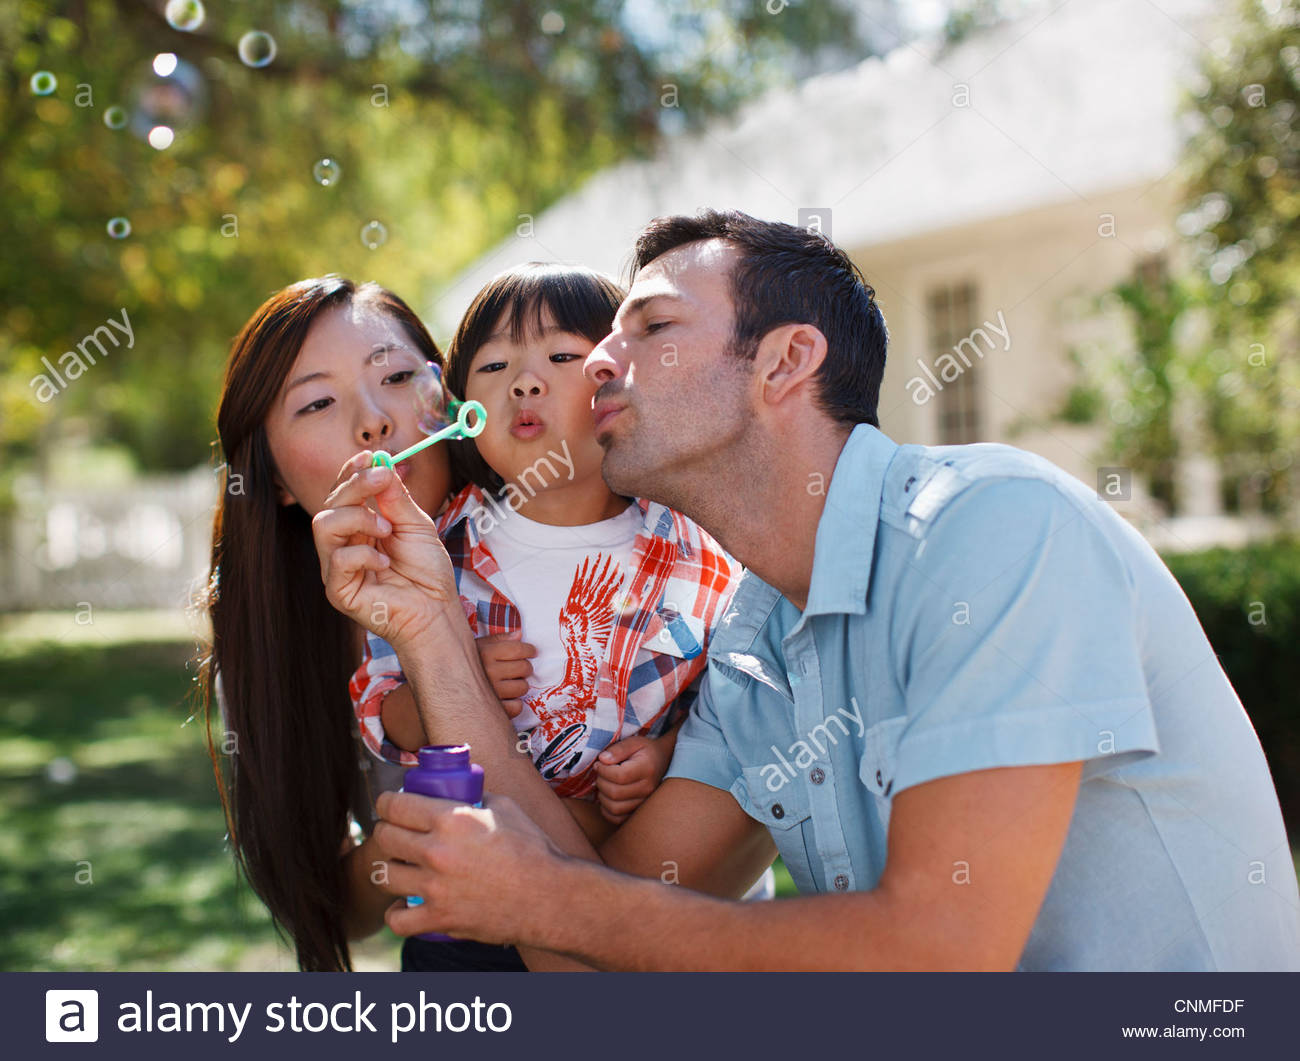 Family blowing bubbles together outdoors Stock Photo